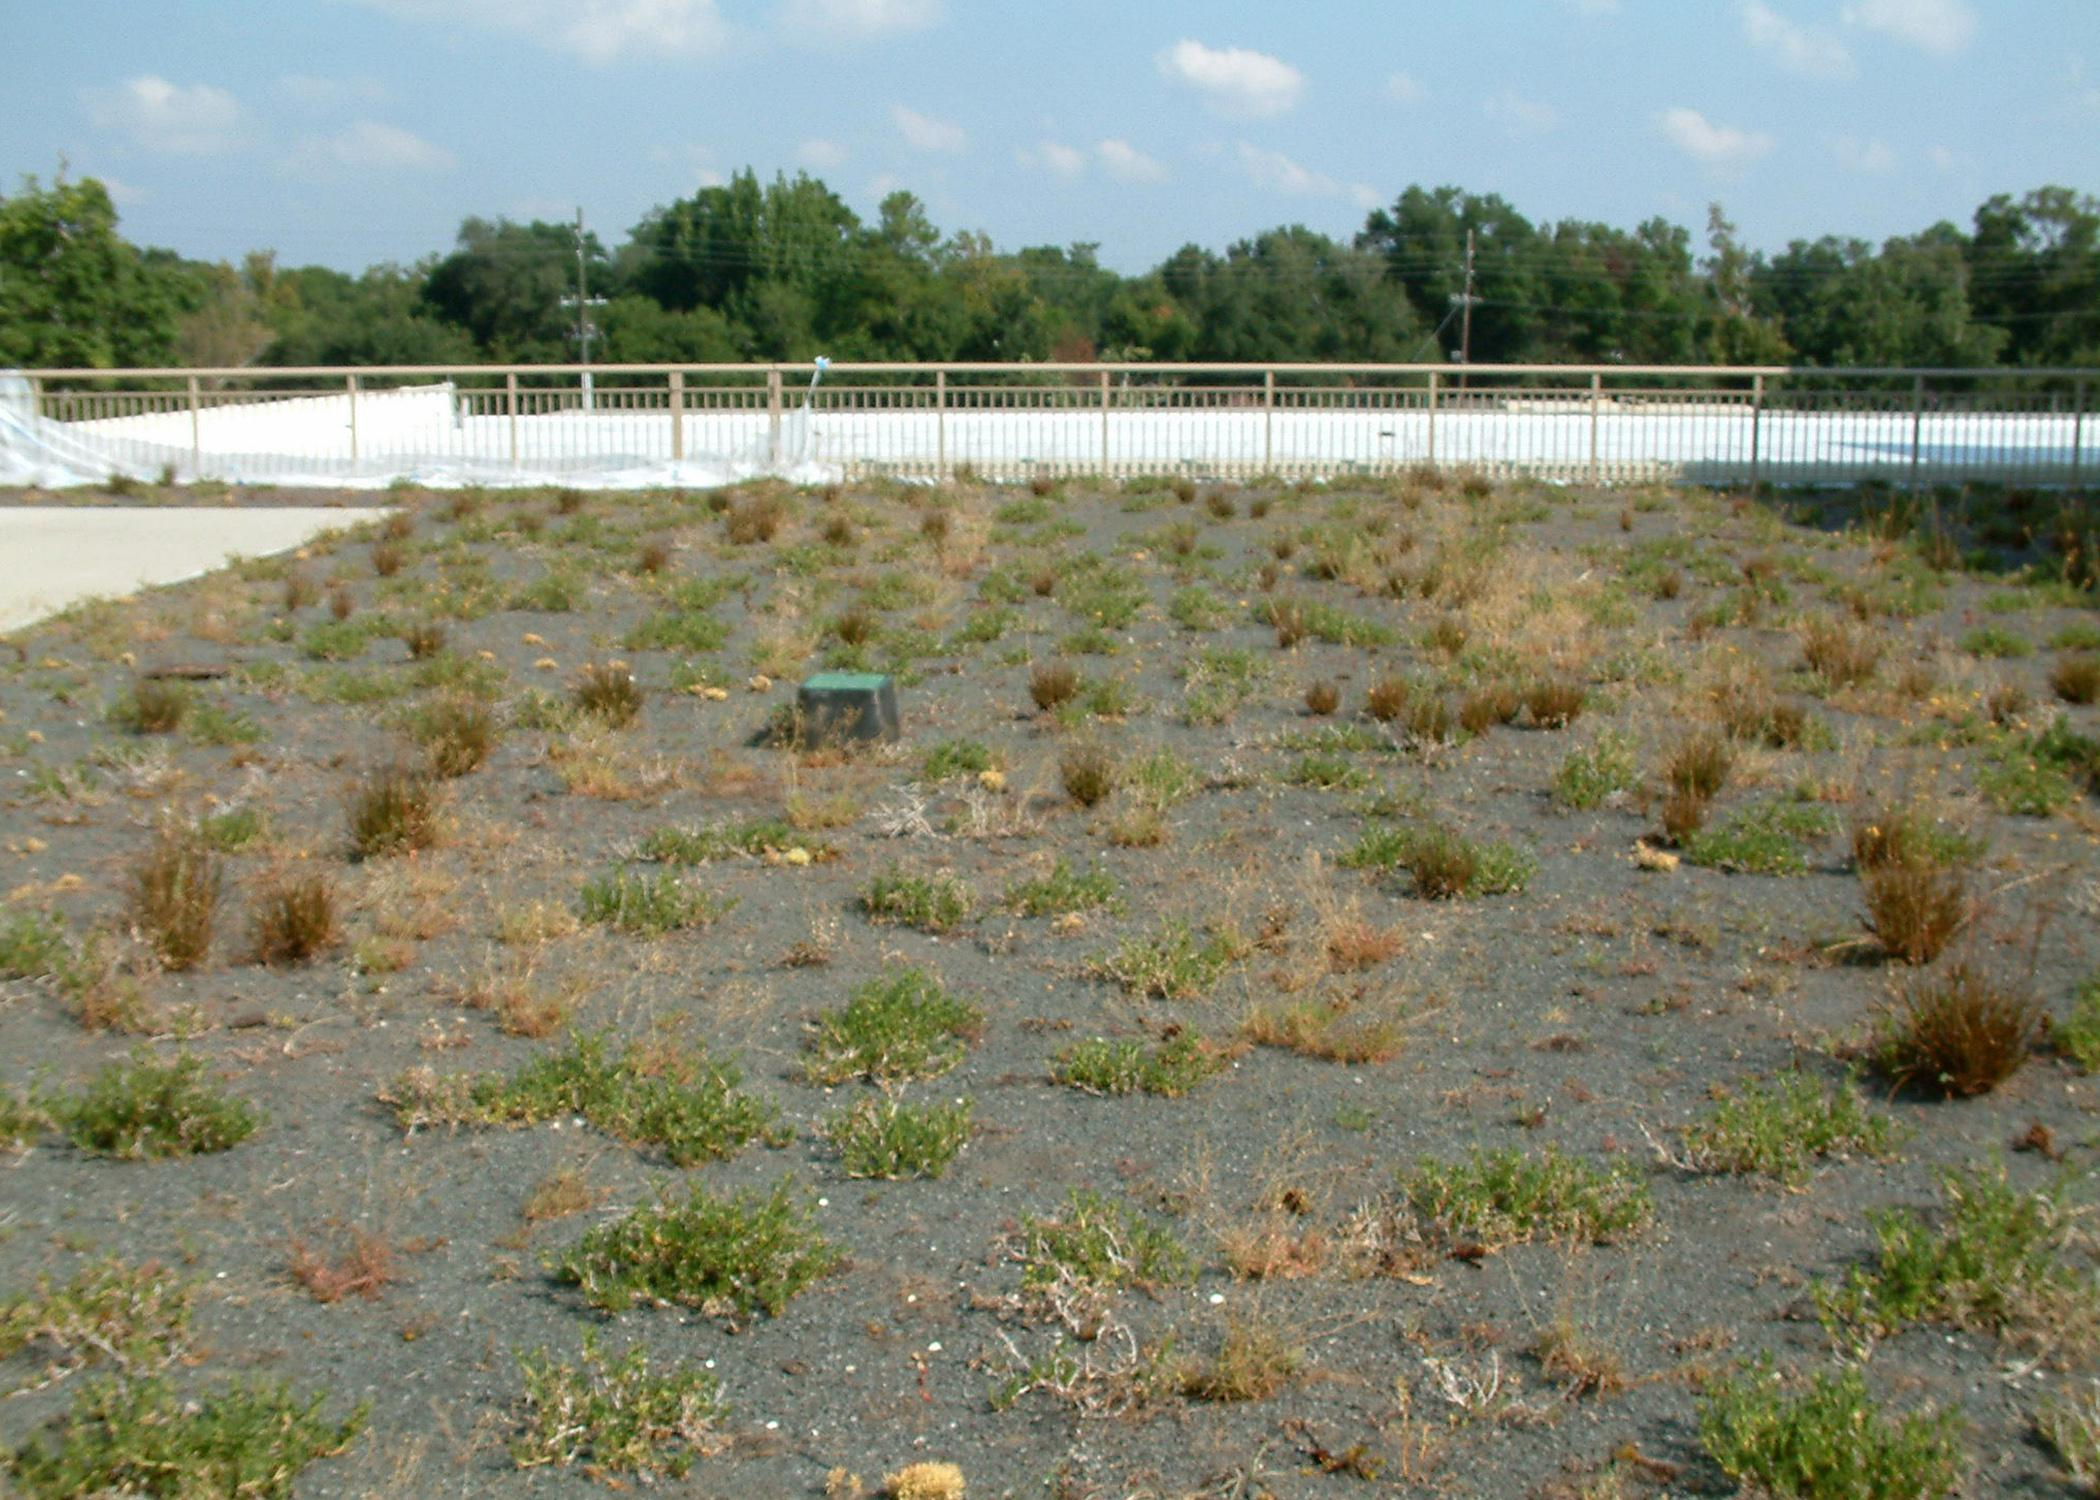 The rooftop gardens at the Gulfport Armed Forces Retirement Home were struggling before horticulture scientists at Mississippi State University planned and implemented a new maintenance plan. (MSU Ag Communications/Submitted photo)